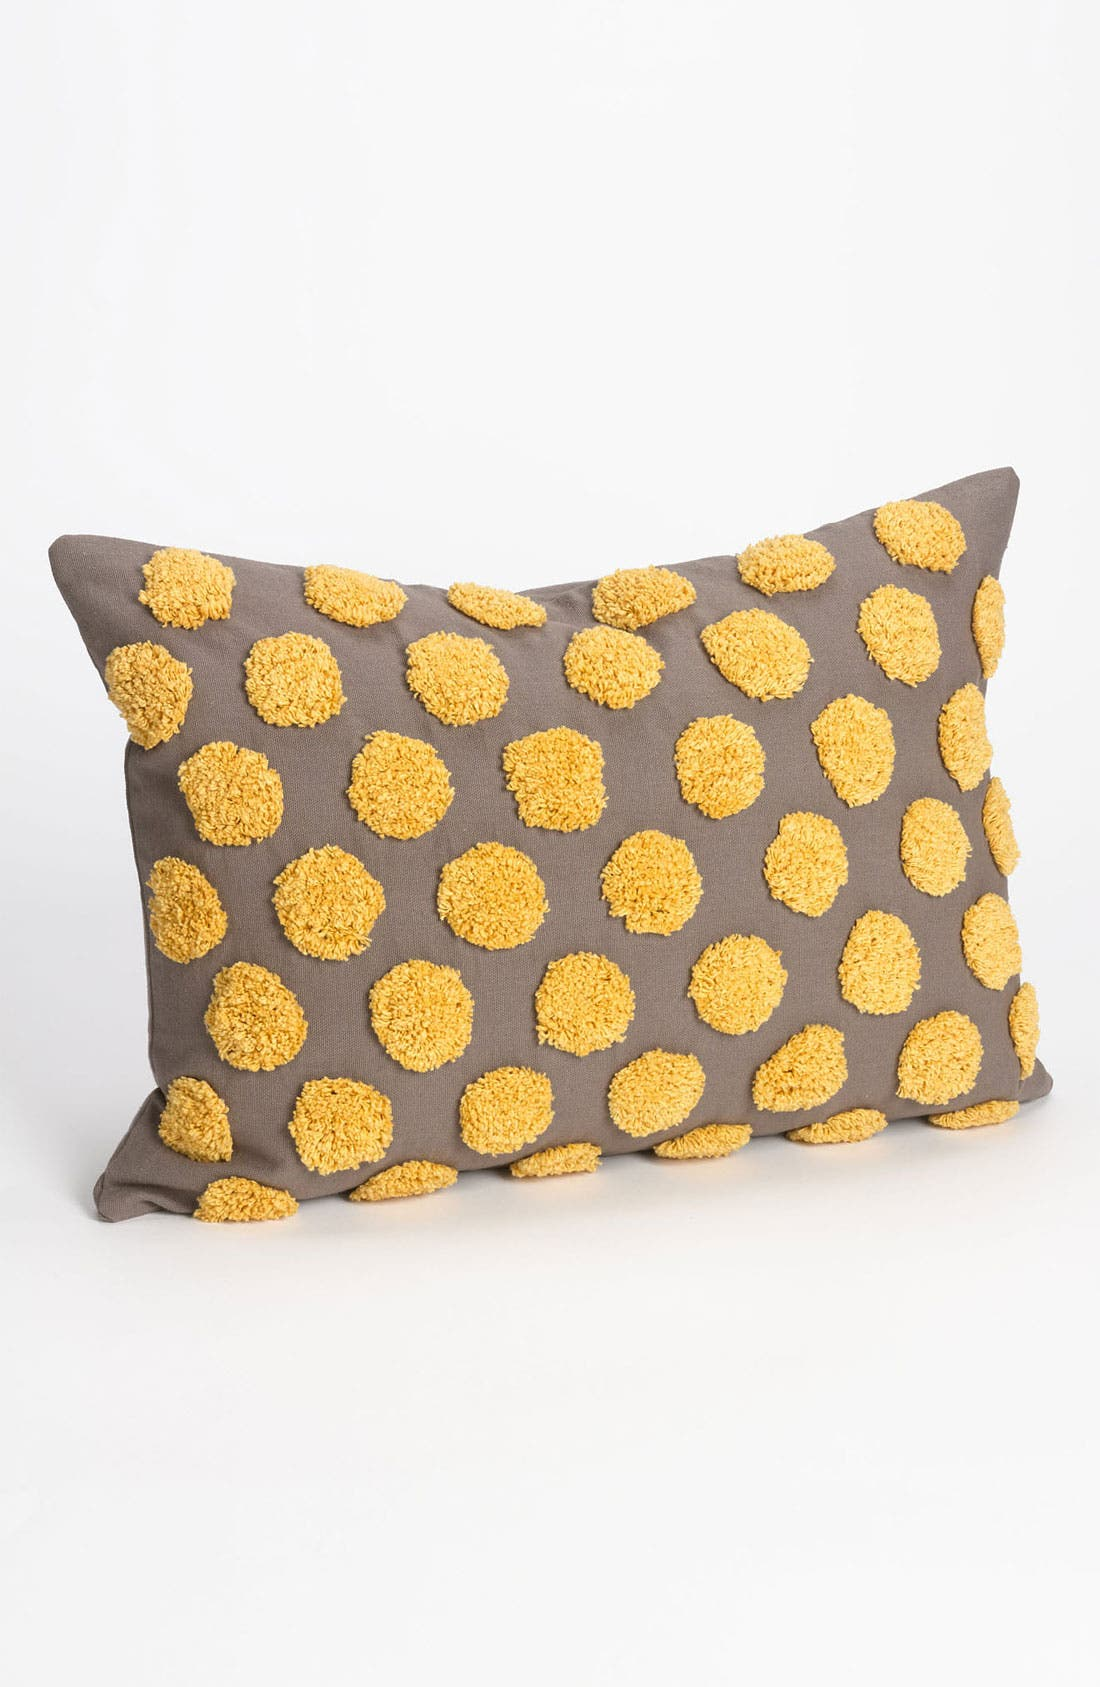 Alternate Image 1 Selected - Nordstrom at Home 'Tufted Spots' Pillow Cover